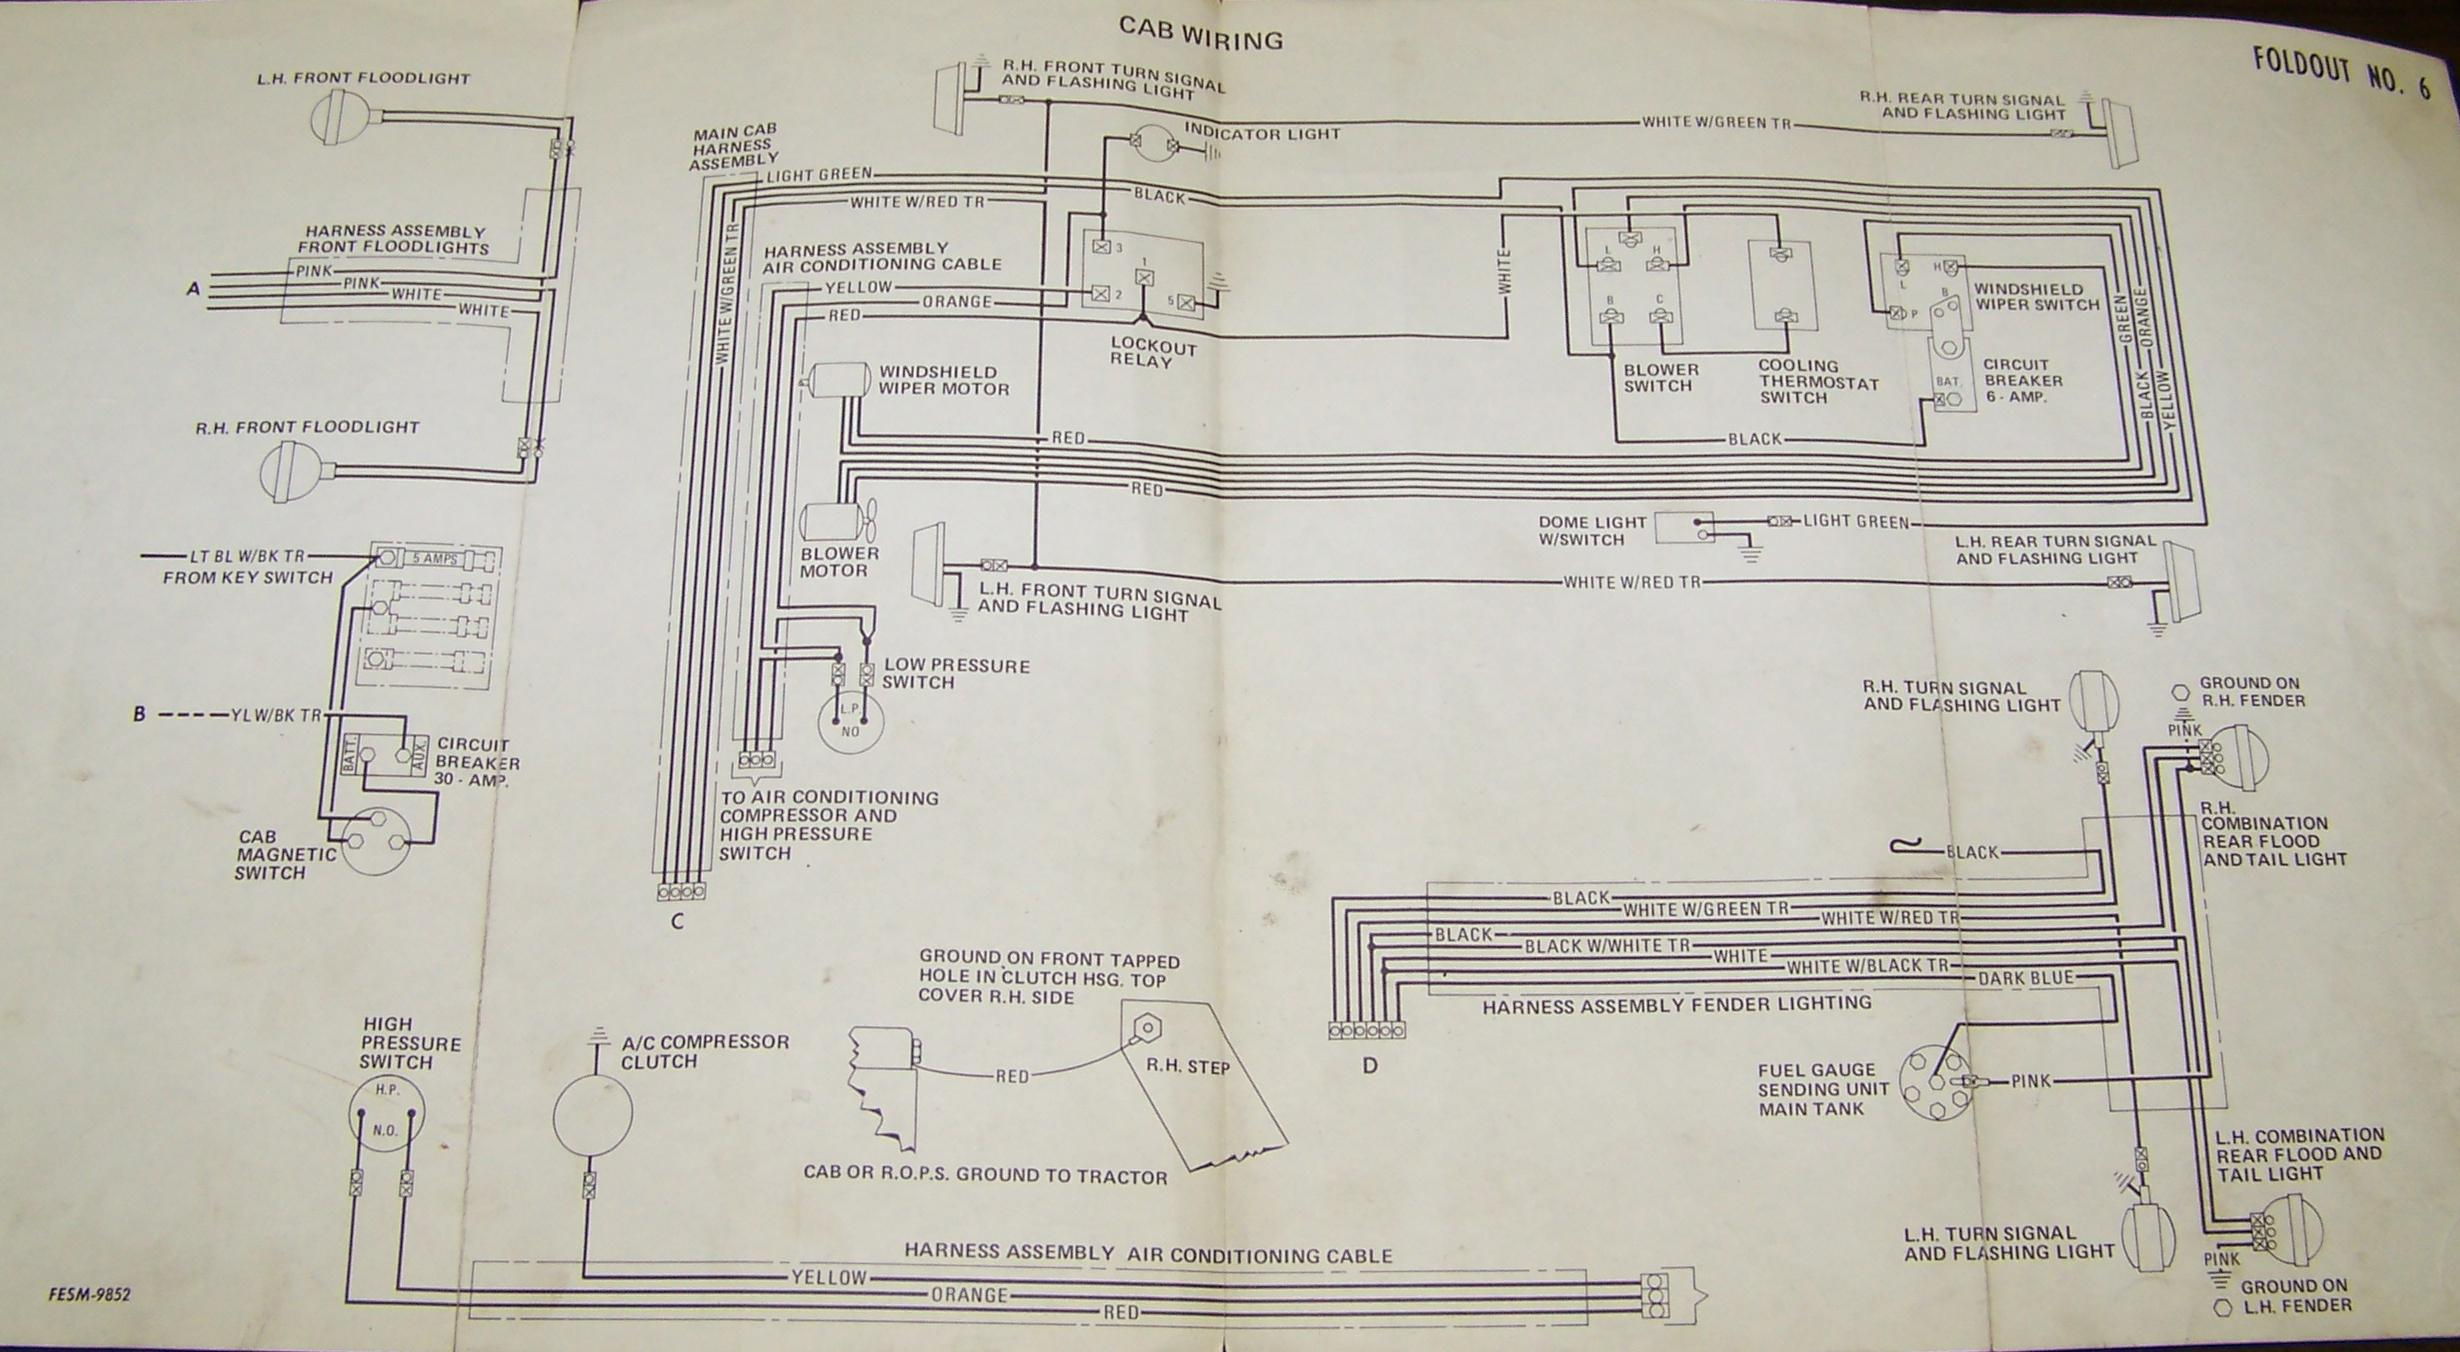 [CSDW_4250]   Carter & Gruenewald Co. Inc. - IH-FARMALL Tractor Electrical Wiring Diagrams | Ih 560 Wiring Diagram |  | Carter and Gruenewald